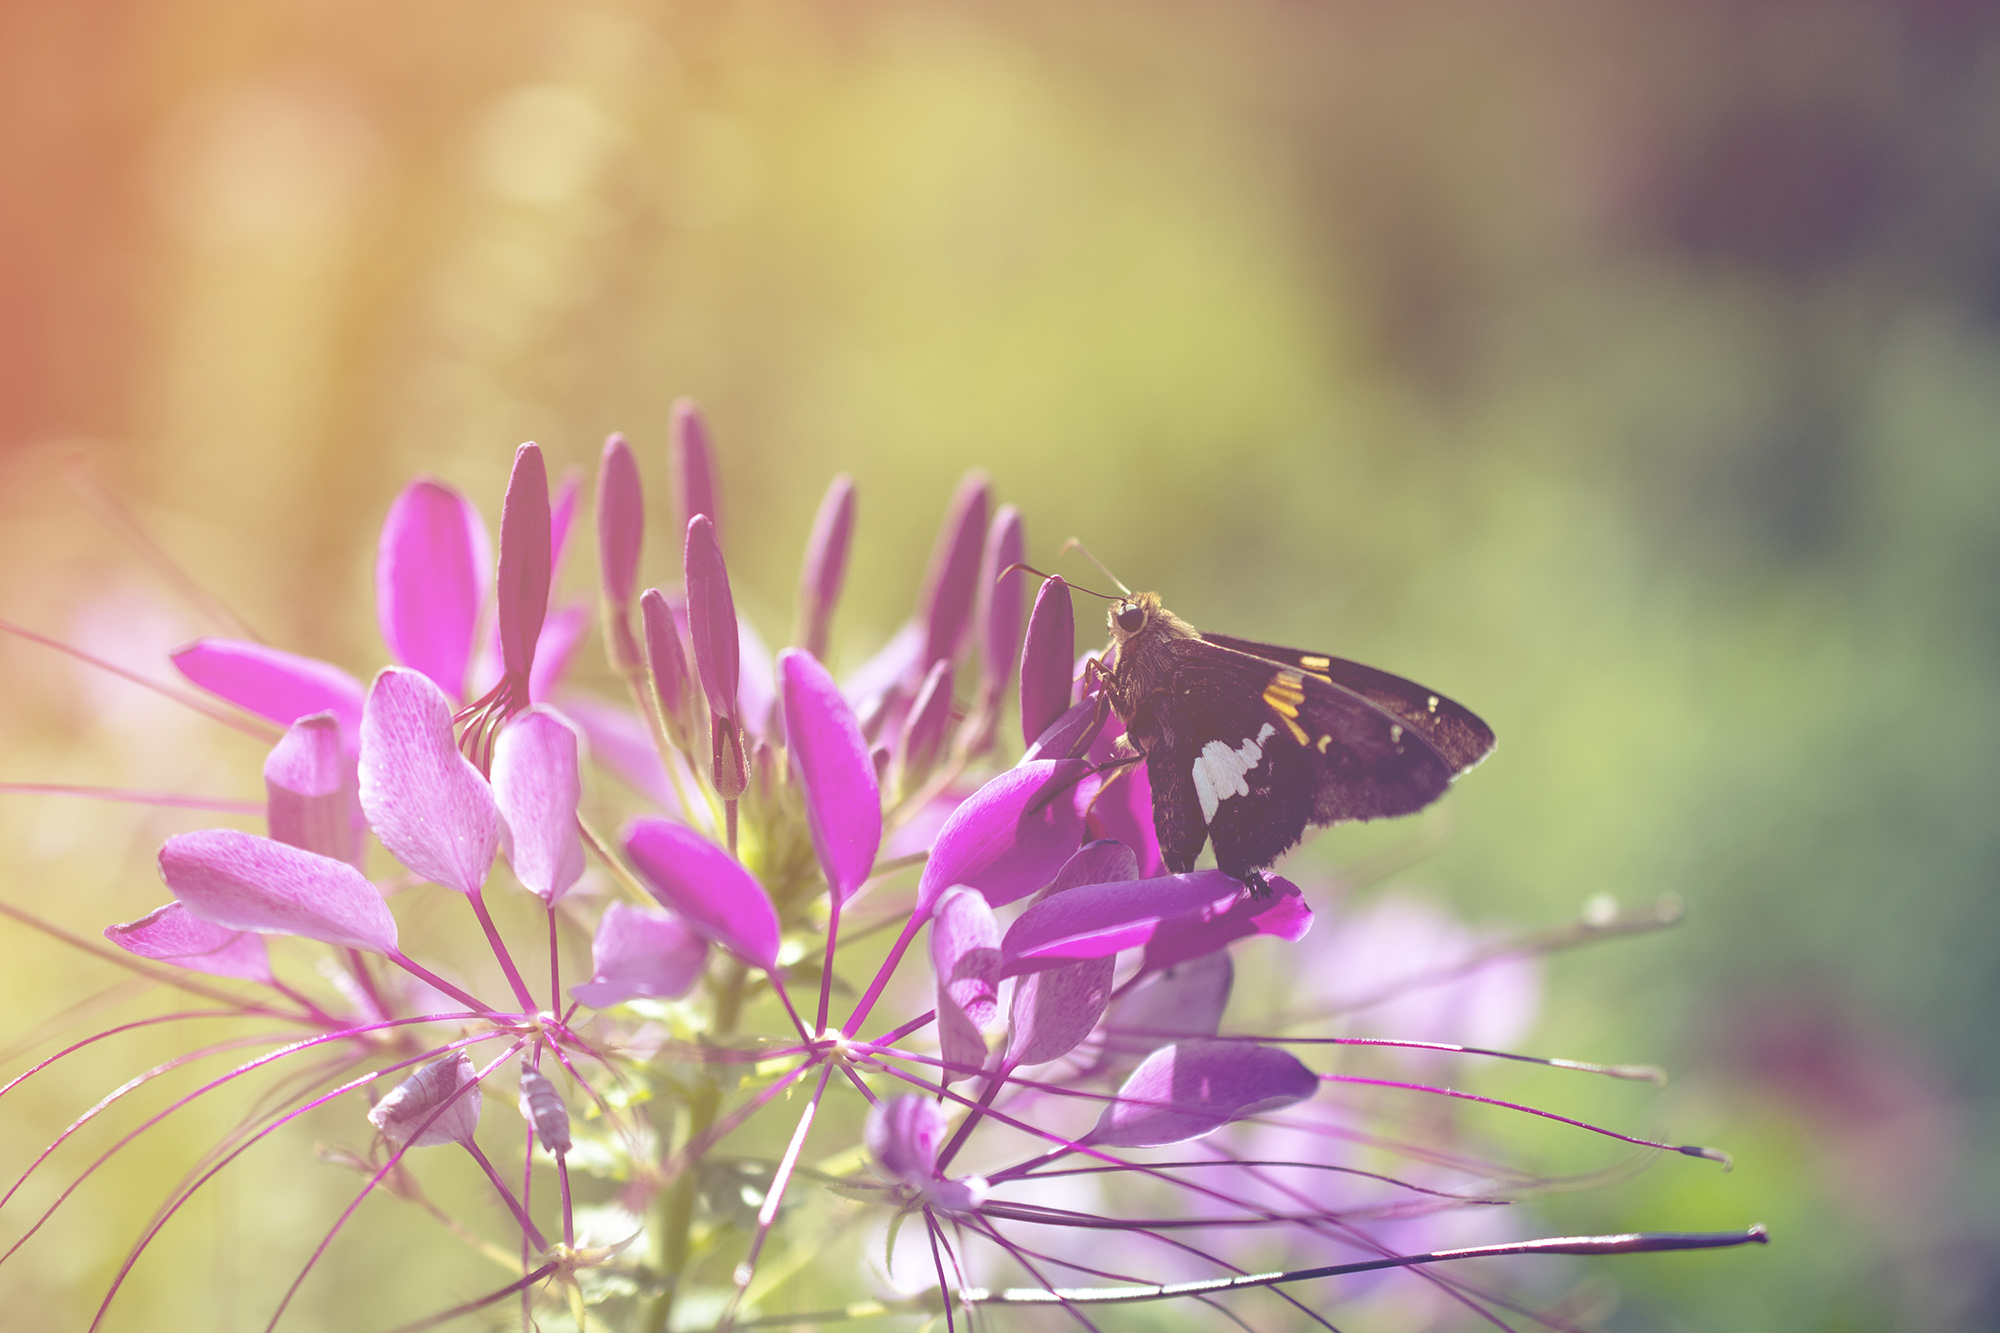 https://pipafineart.com/collections/nature-photo-prints/products/spider-flower-in-glory-light-with-spotted-moth-nature-photography-wall-art-prints-unframed-and-fine-art-canvas-prints